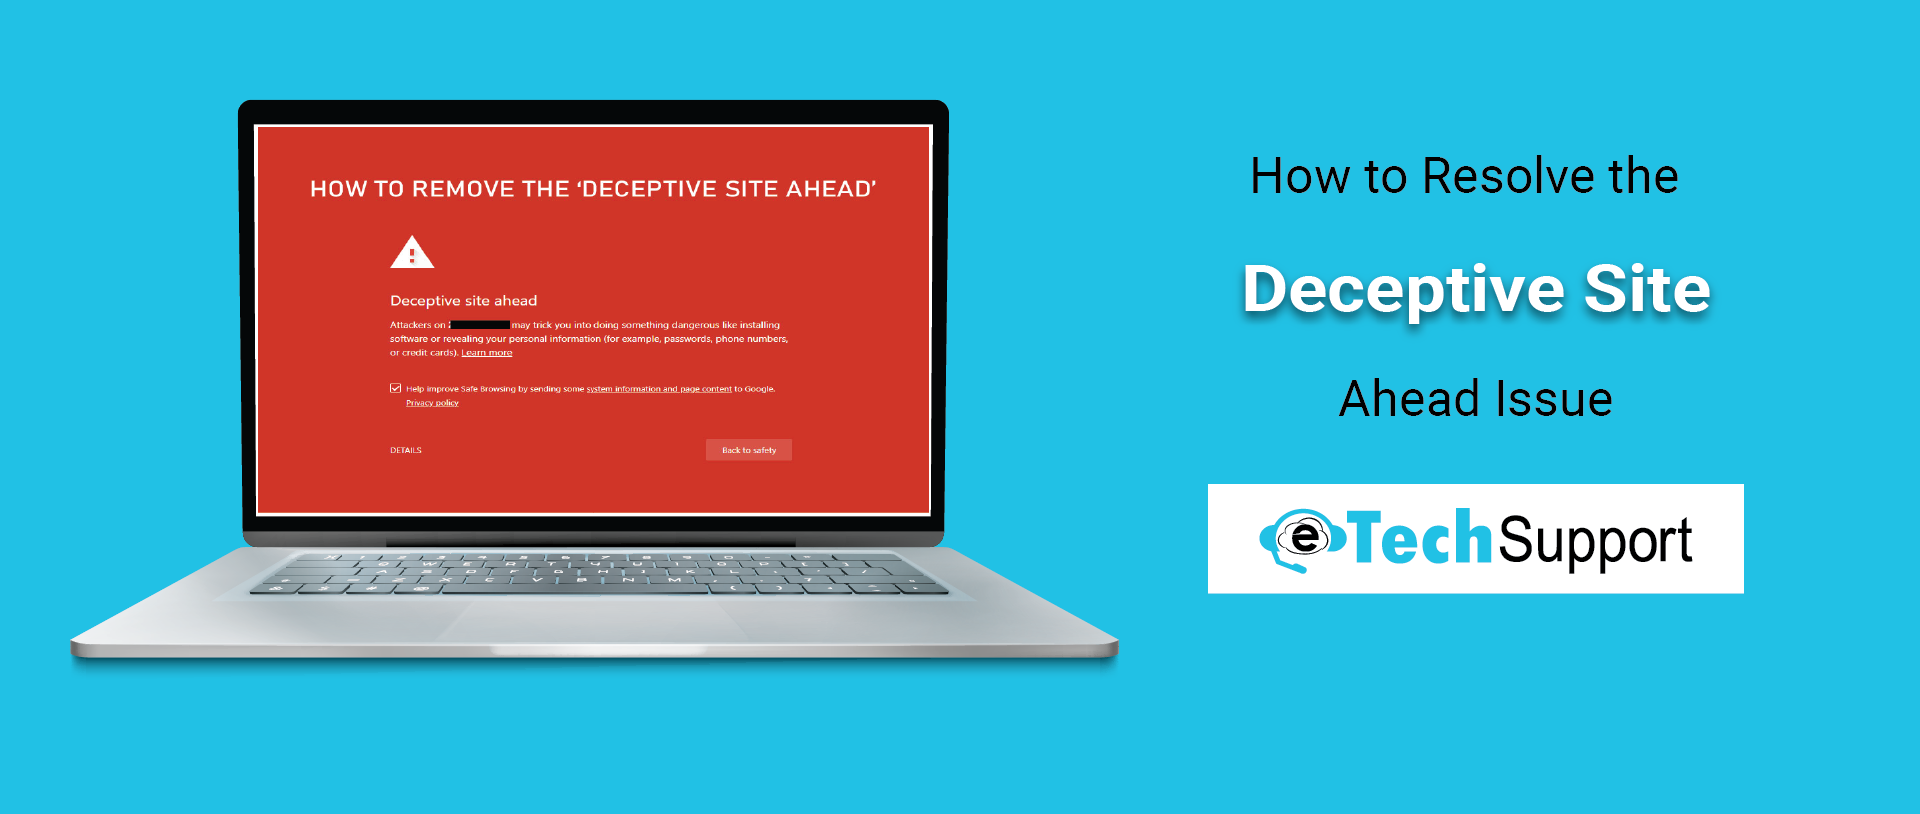 Deceptive-site-Ahead-Issue